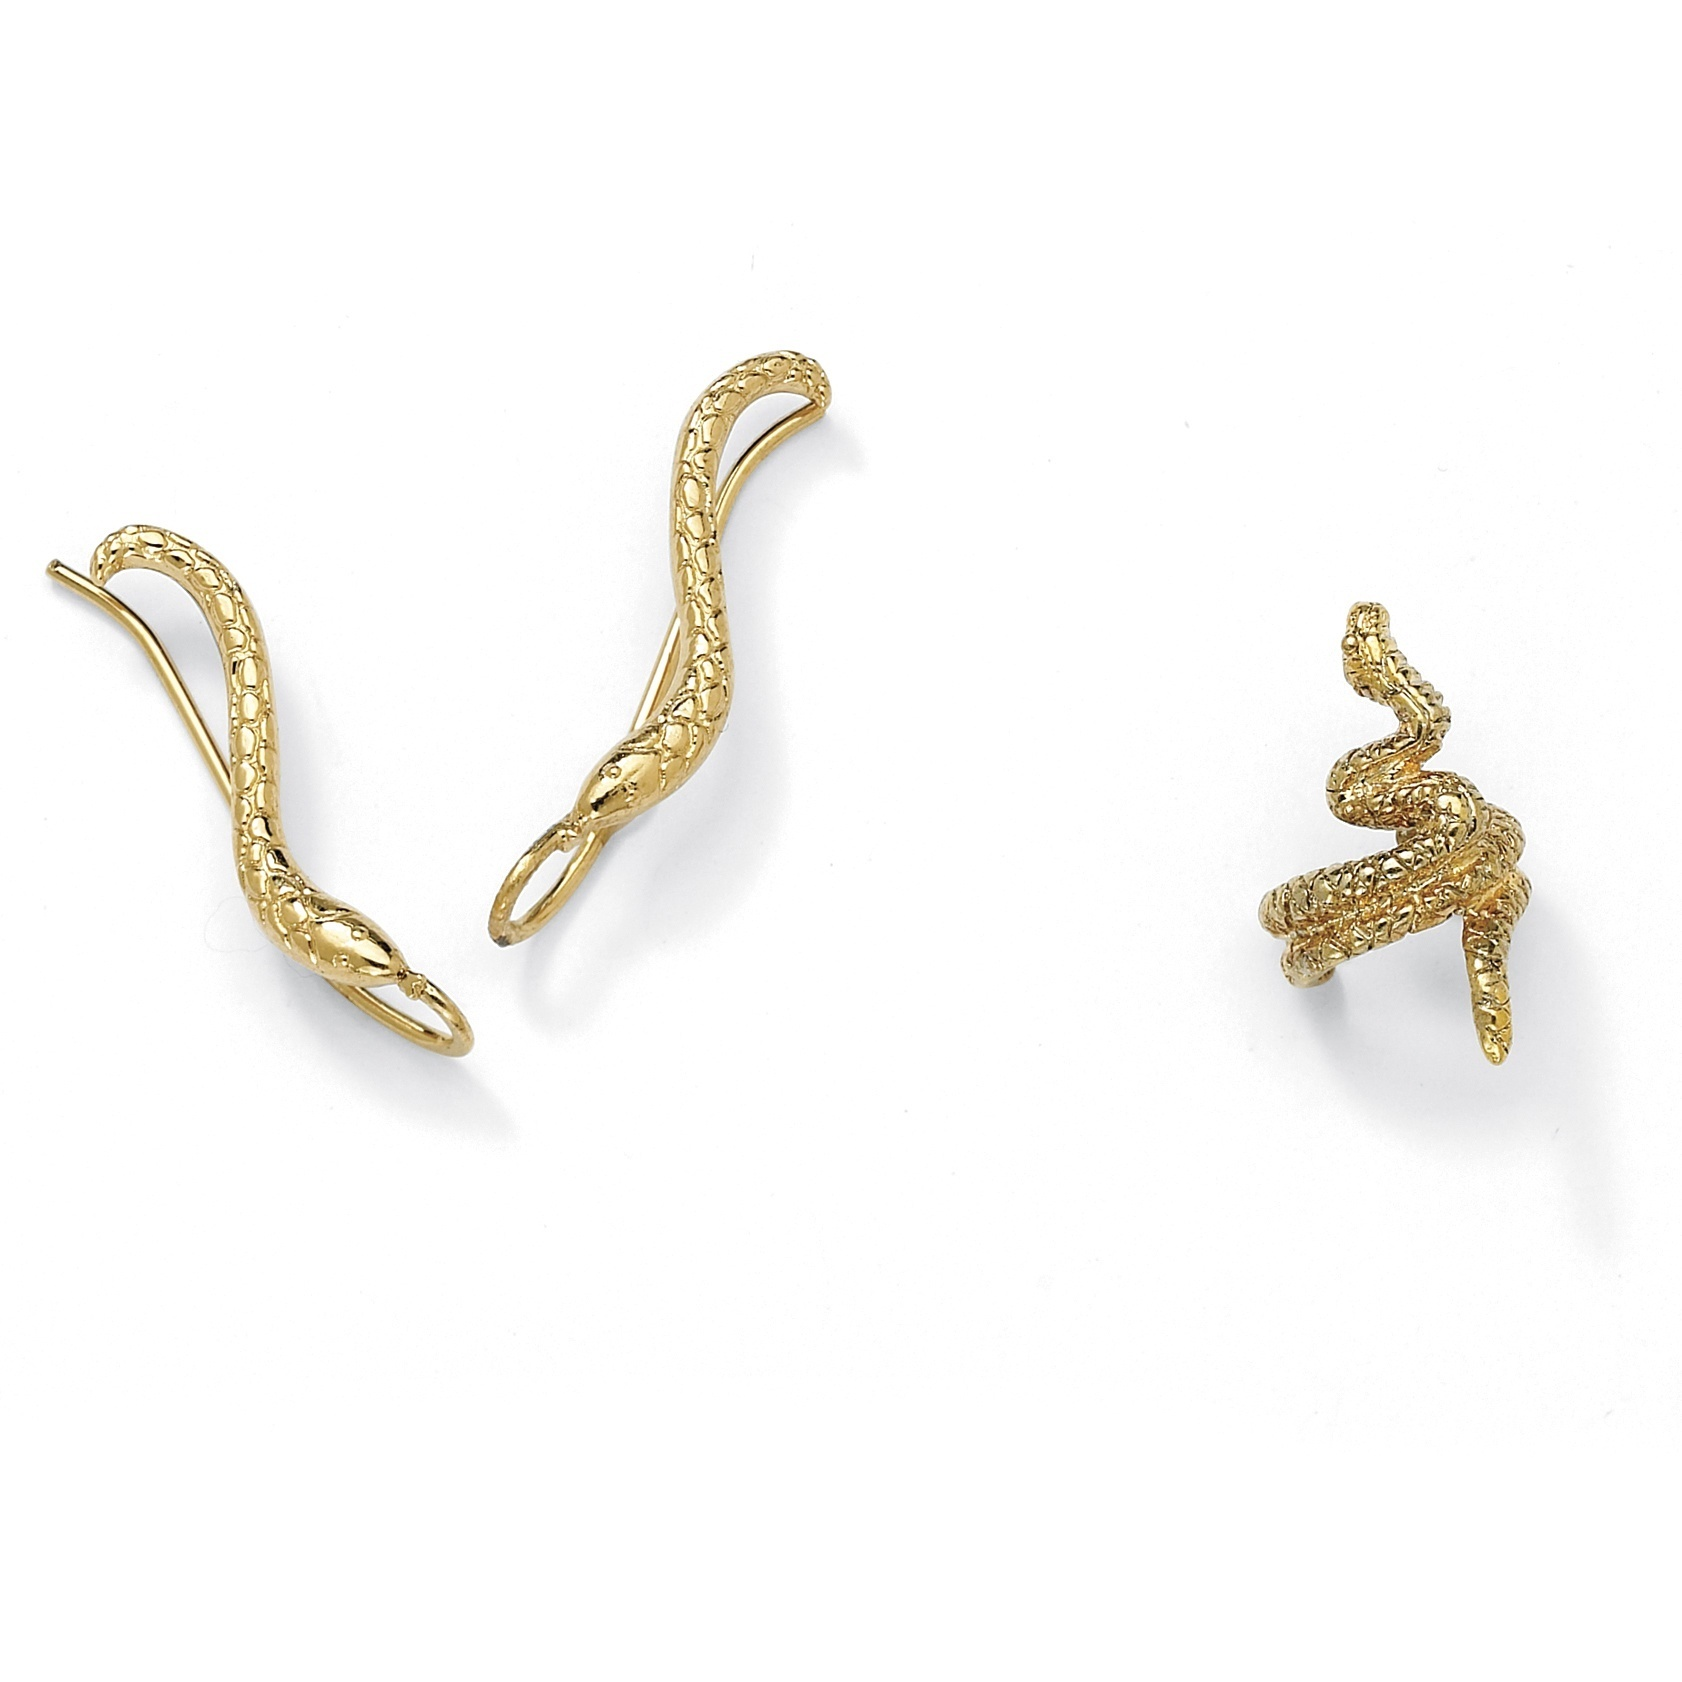 palmbeach-Toscana-Collection-Gold-Over-Silver-Snake-Diamond-cut-Ear-Pins-and-Cuff-Set